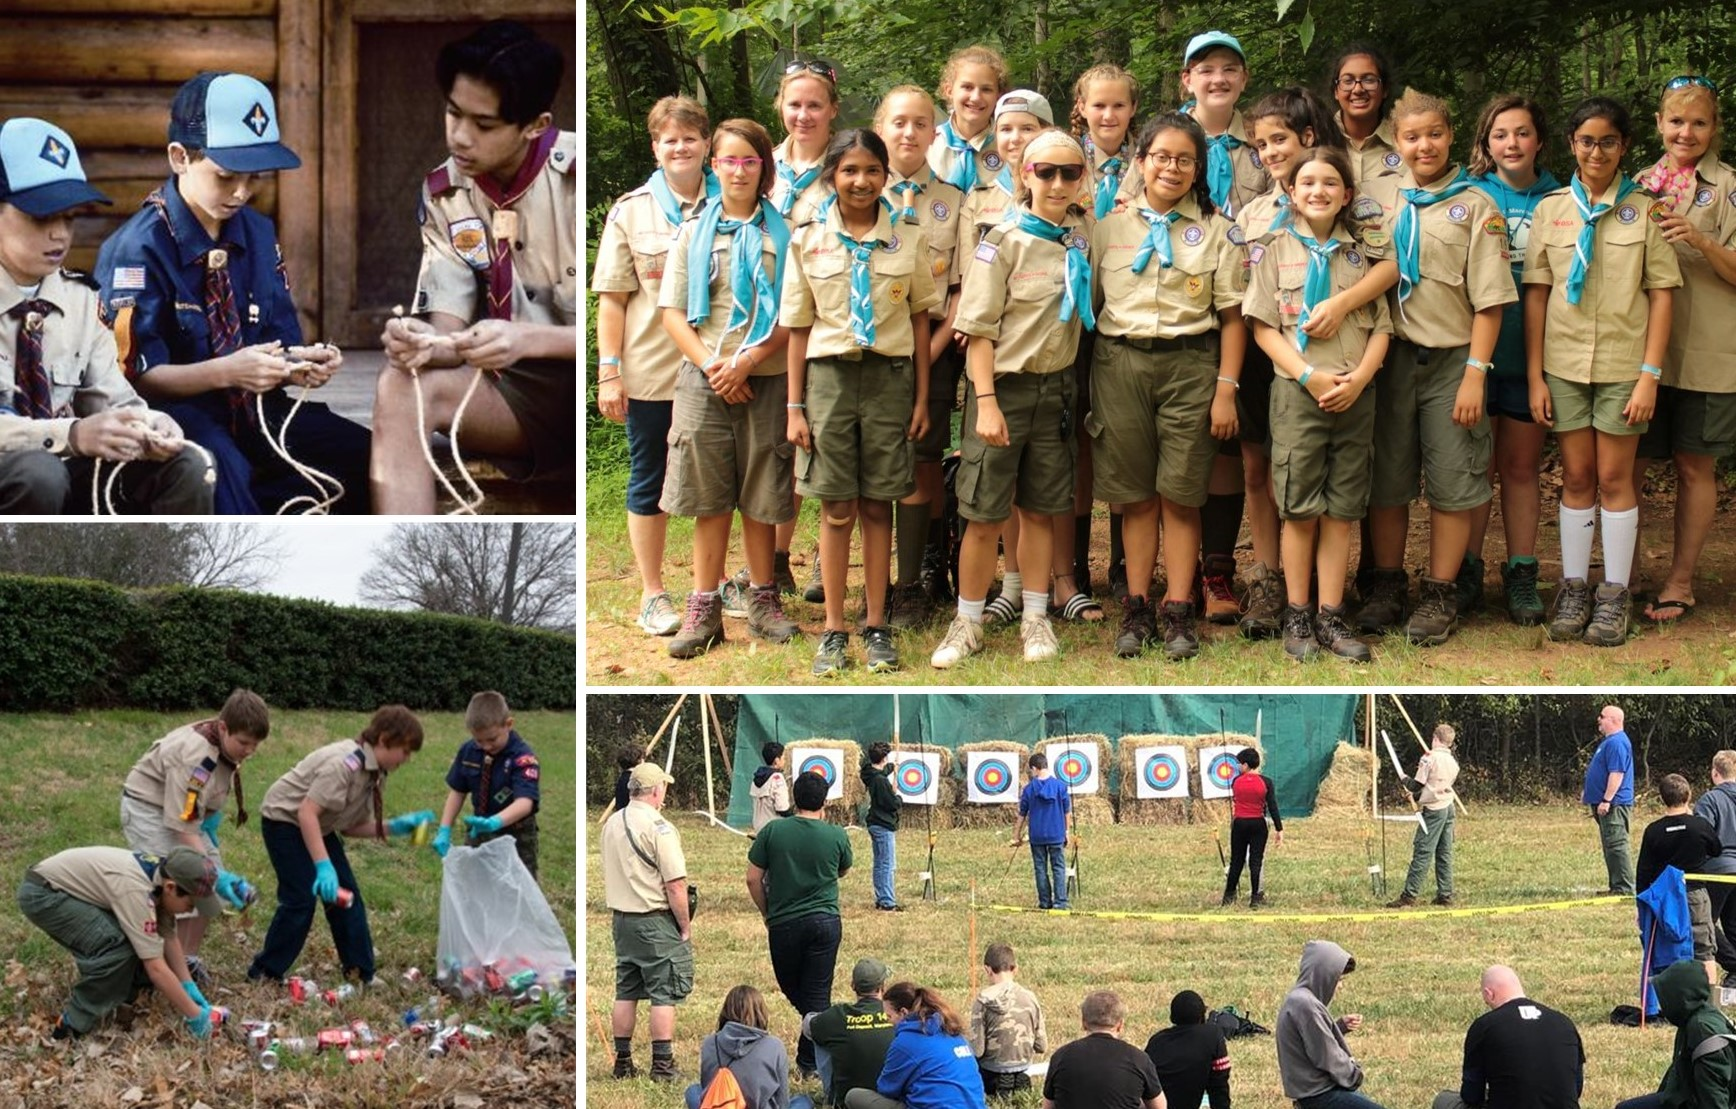 Scouting Continues to Build Character, Leadership, Hope in Families Across Chester County